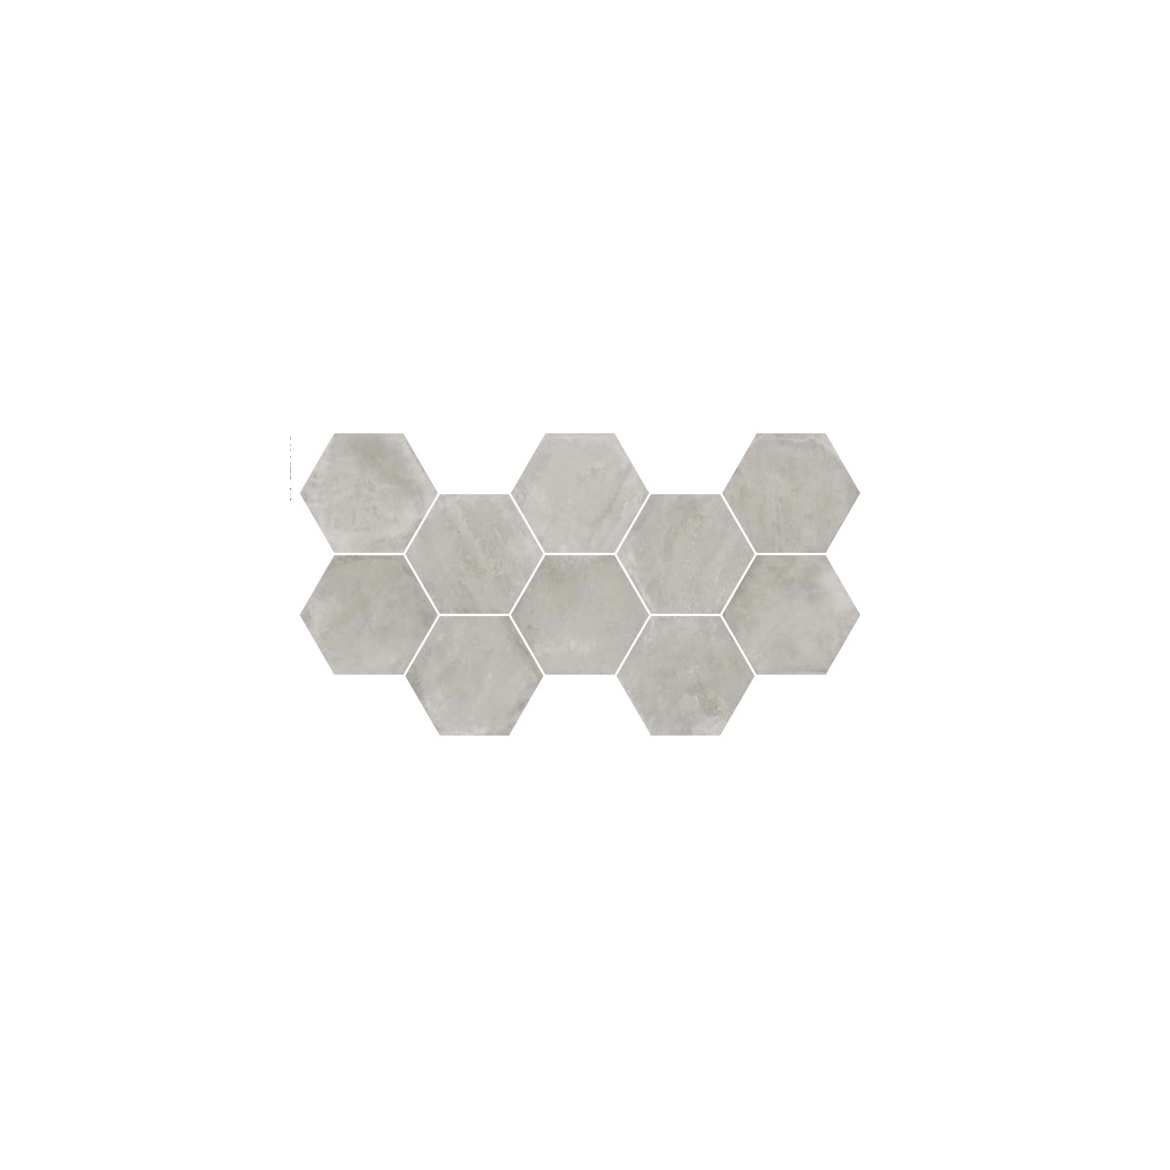 https://cerdesign.pl/1914-large_default/p3365-equipe-urban-hexagon-silver-292x254-23514.jpg